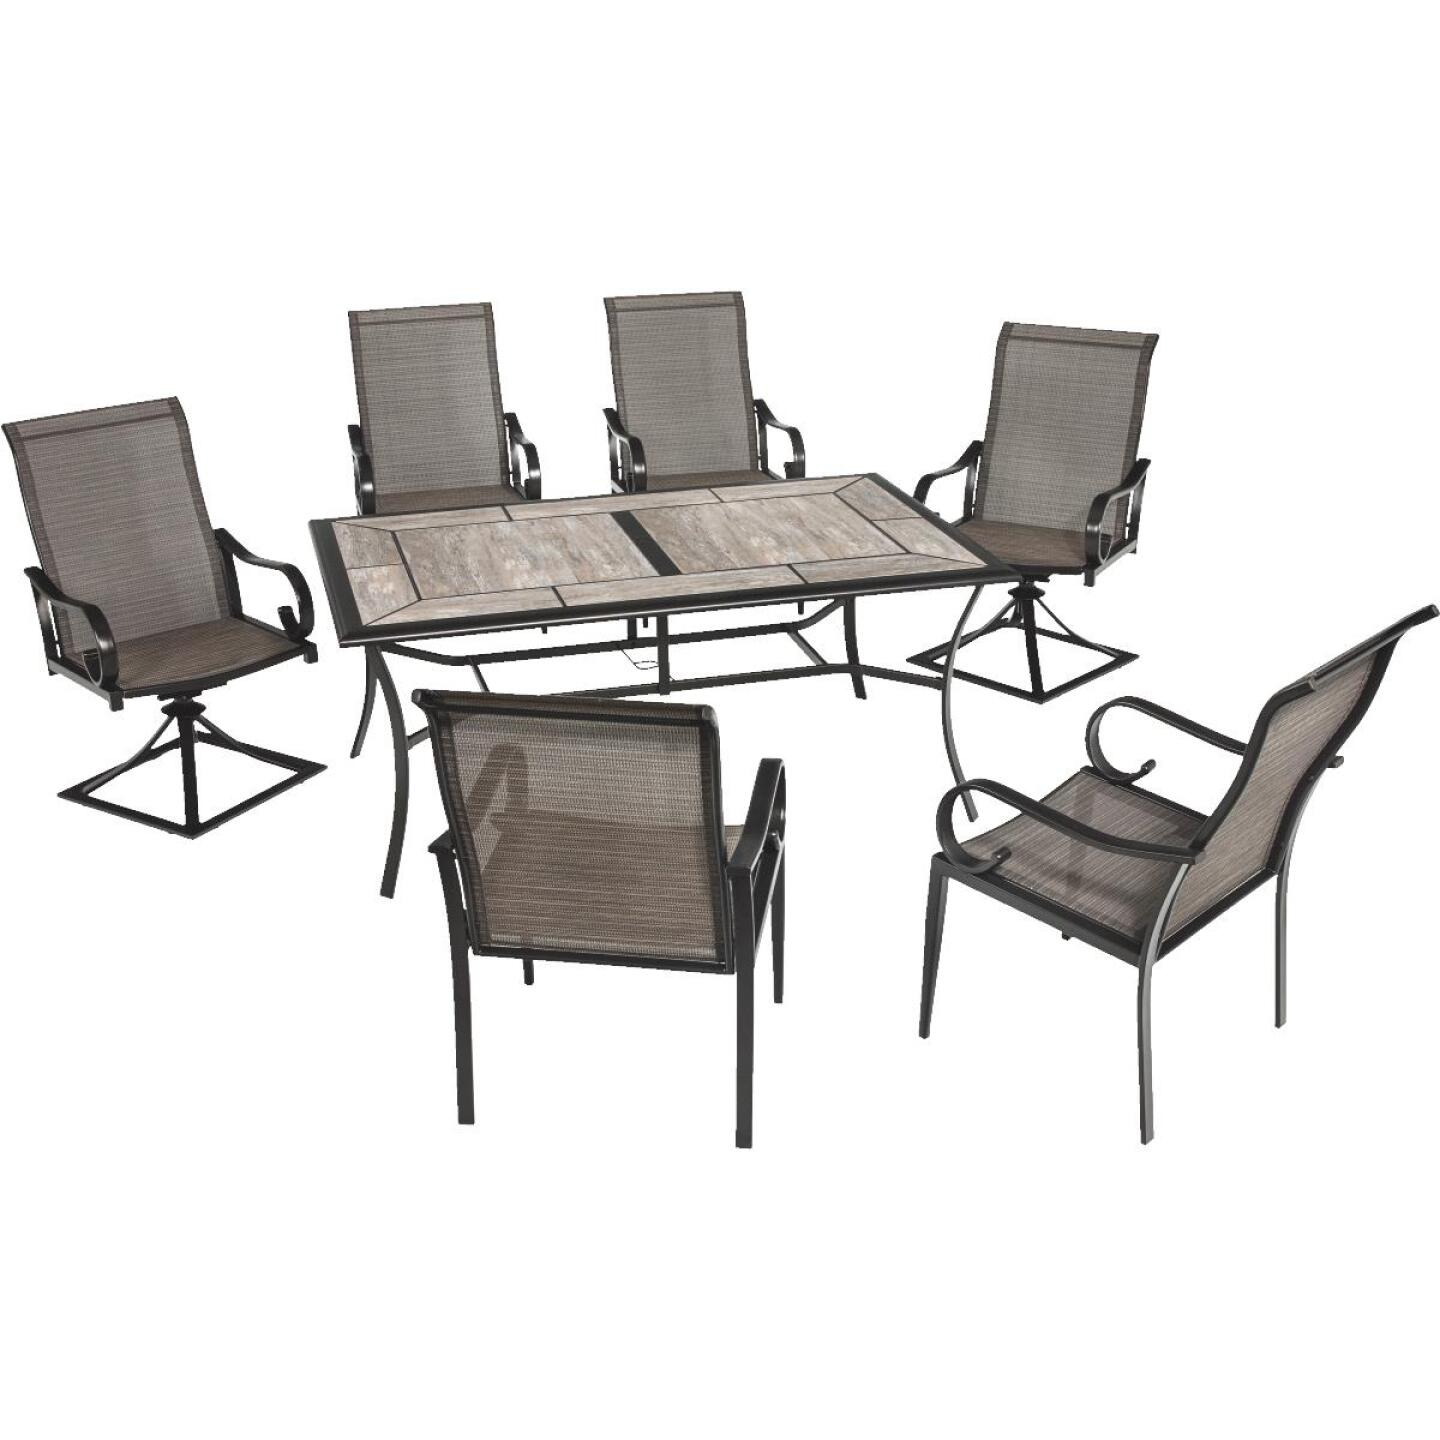 Outdoor Expressions Berkshire 7-Piece Dining Set Image 67